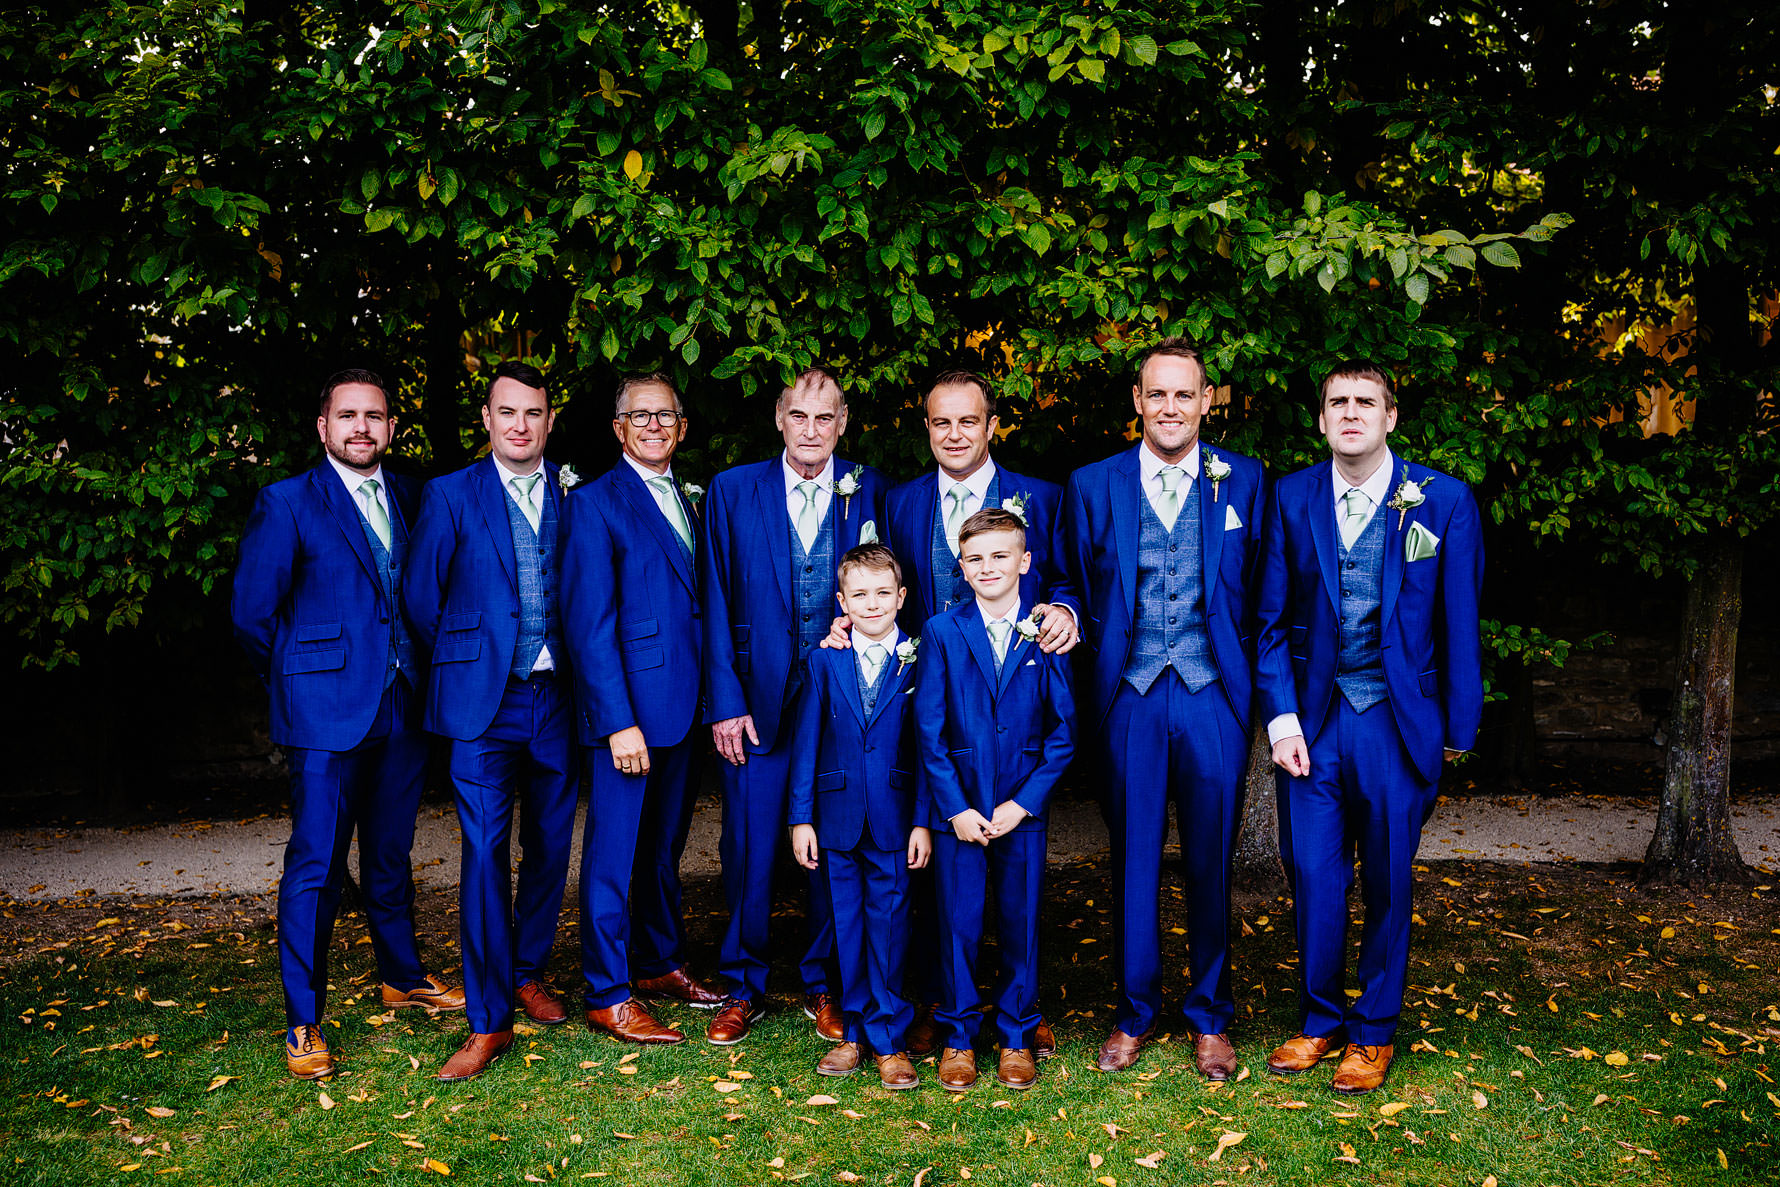 the groom and his groomsmen